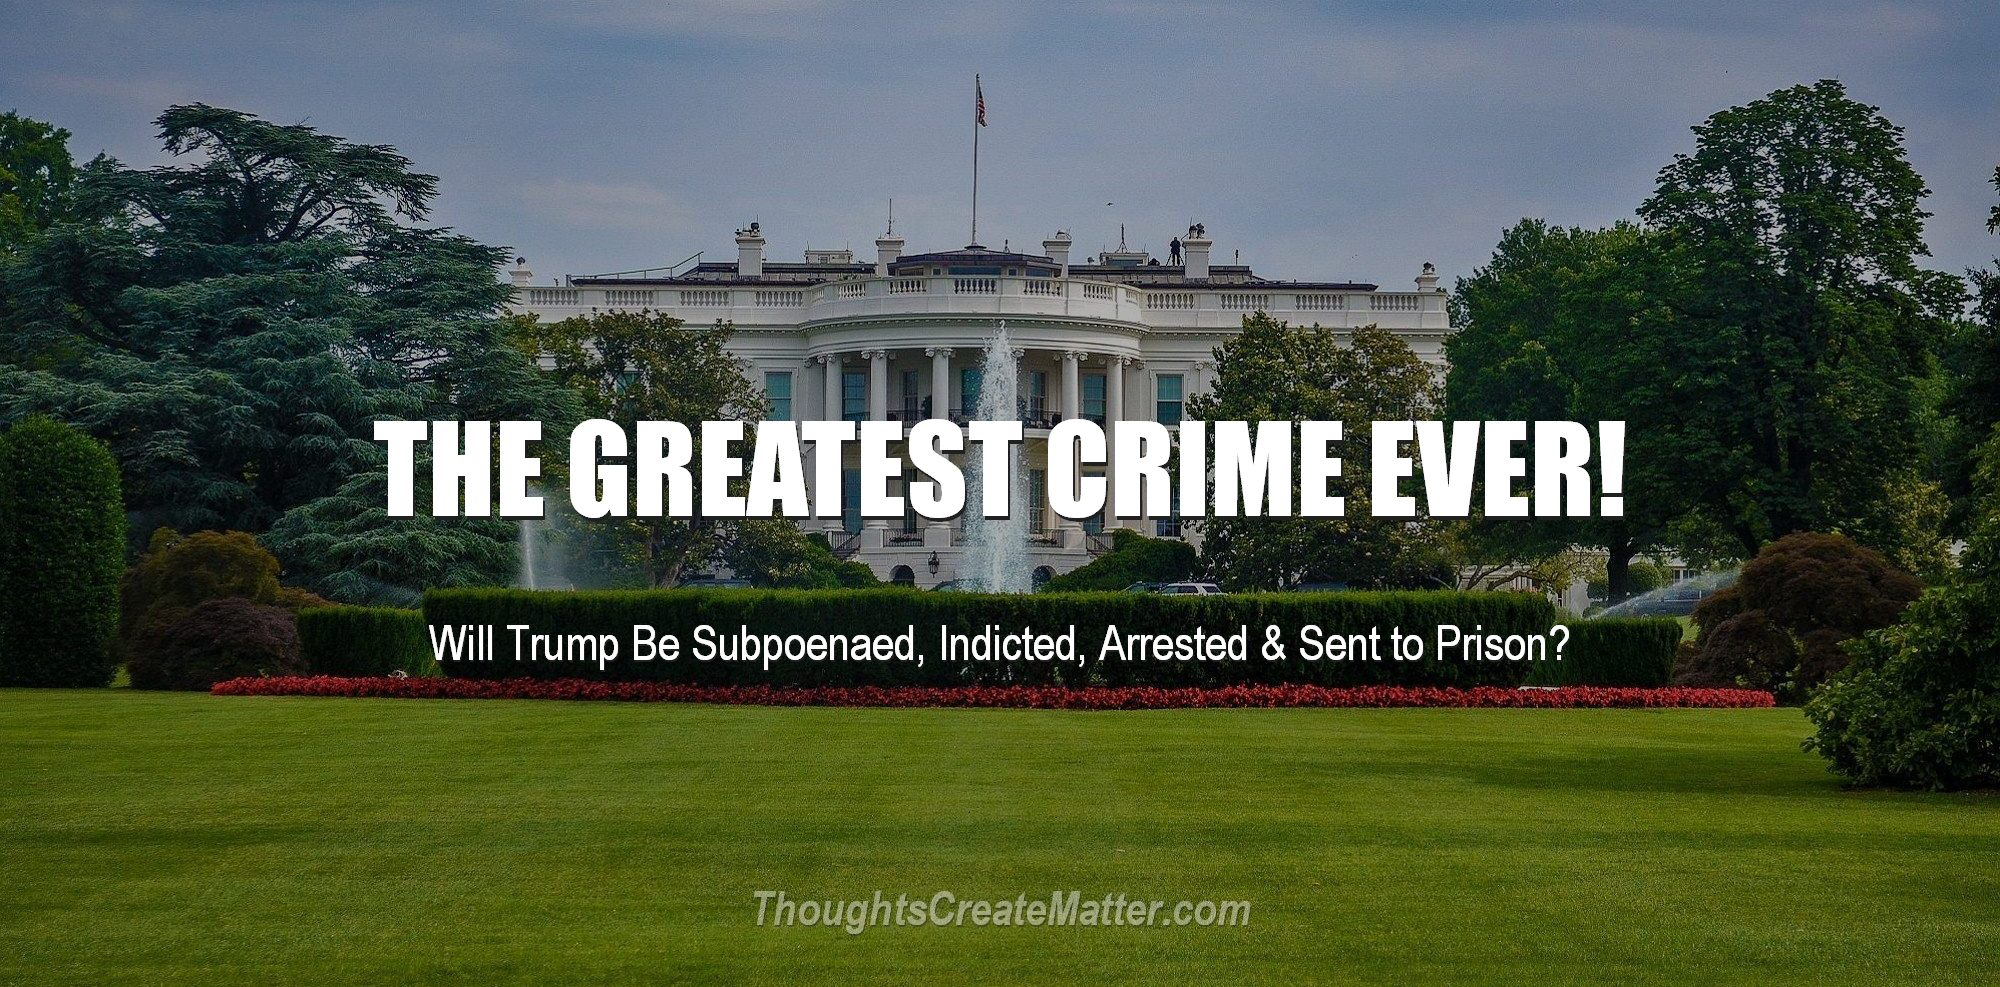 Whitehouse where the crime took place. Will Trump be subpoenaed, indicted, arrested and sent to prison? Is this the greatest crime ever?